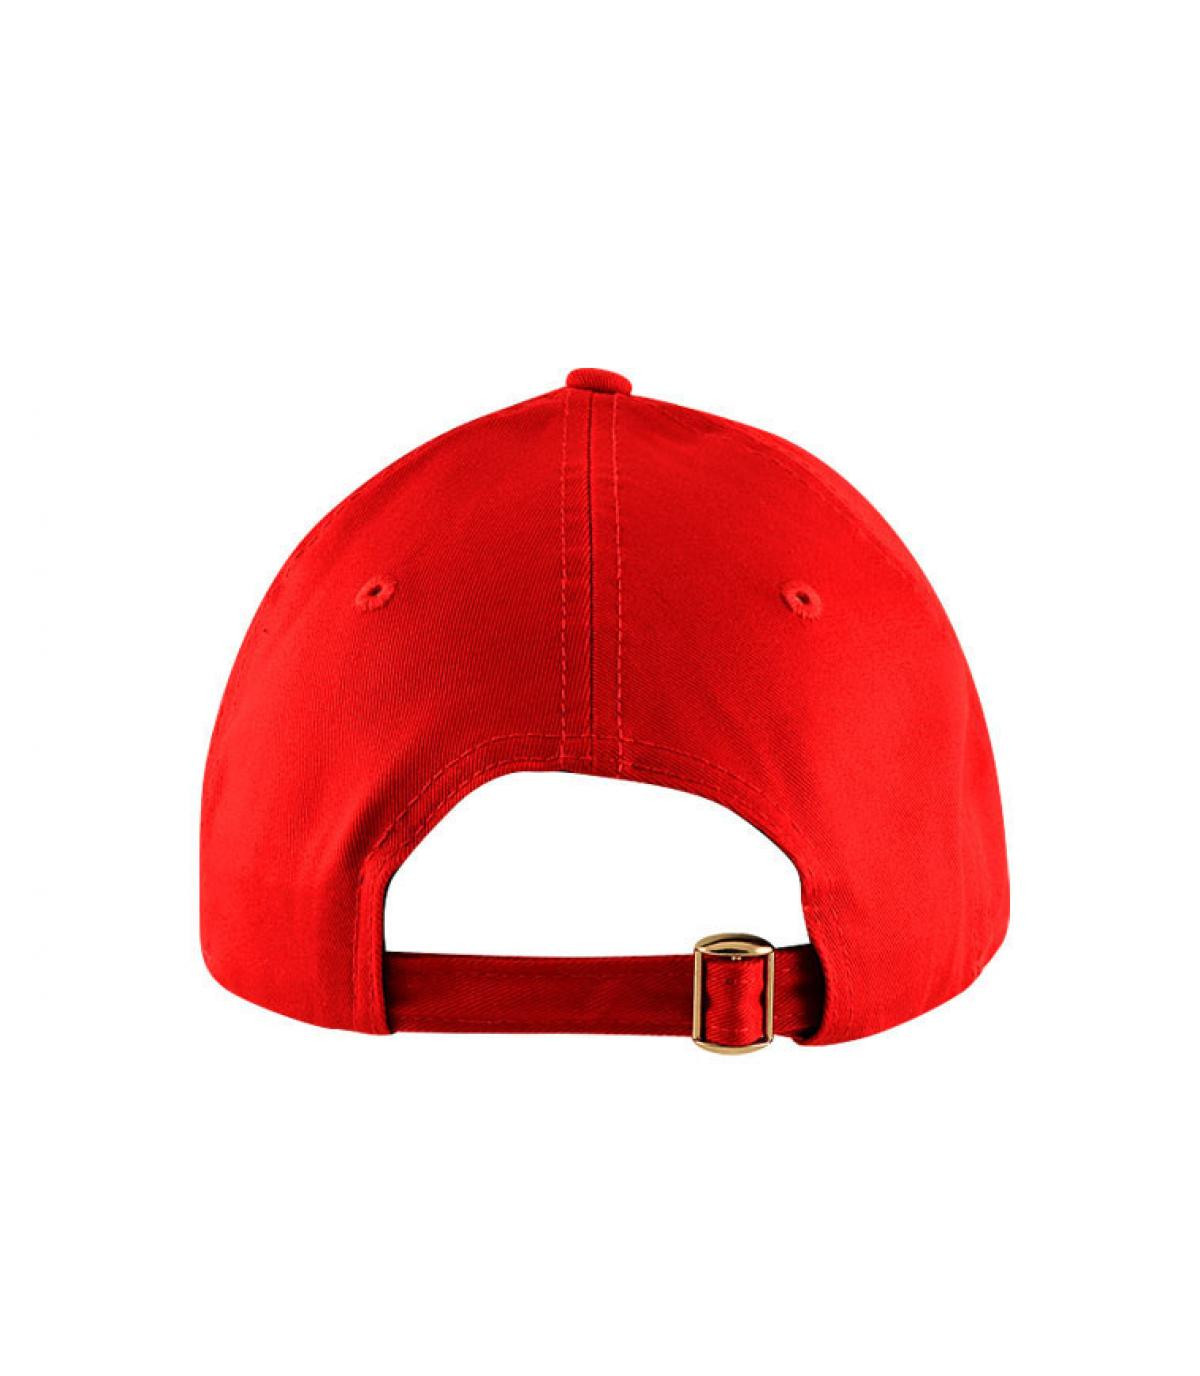 Details Child 9Forty NY red - afbeeling 3